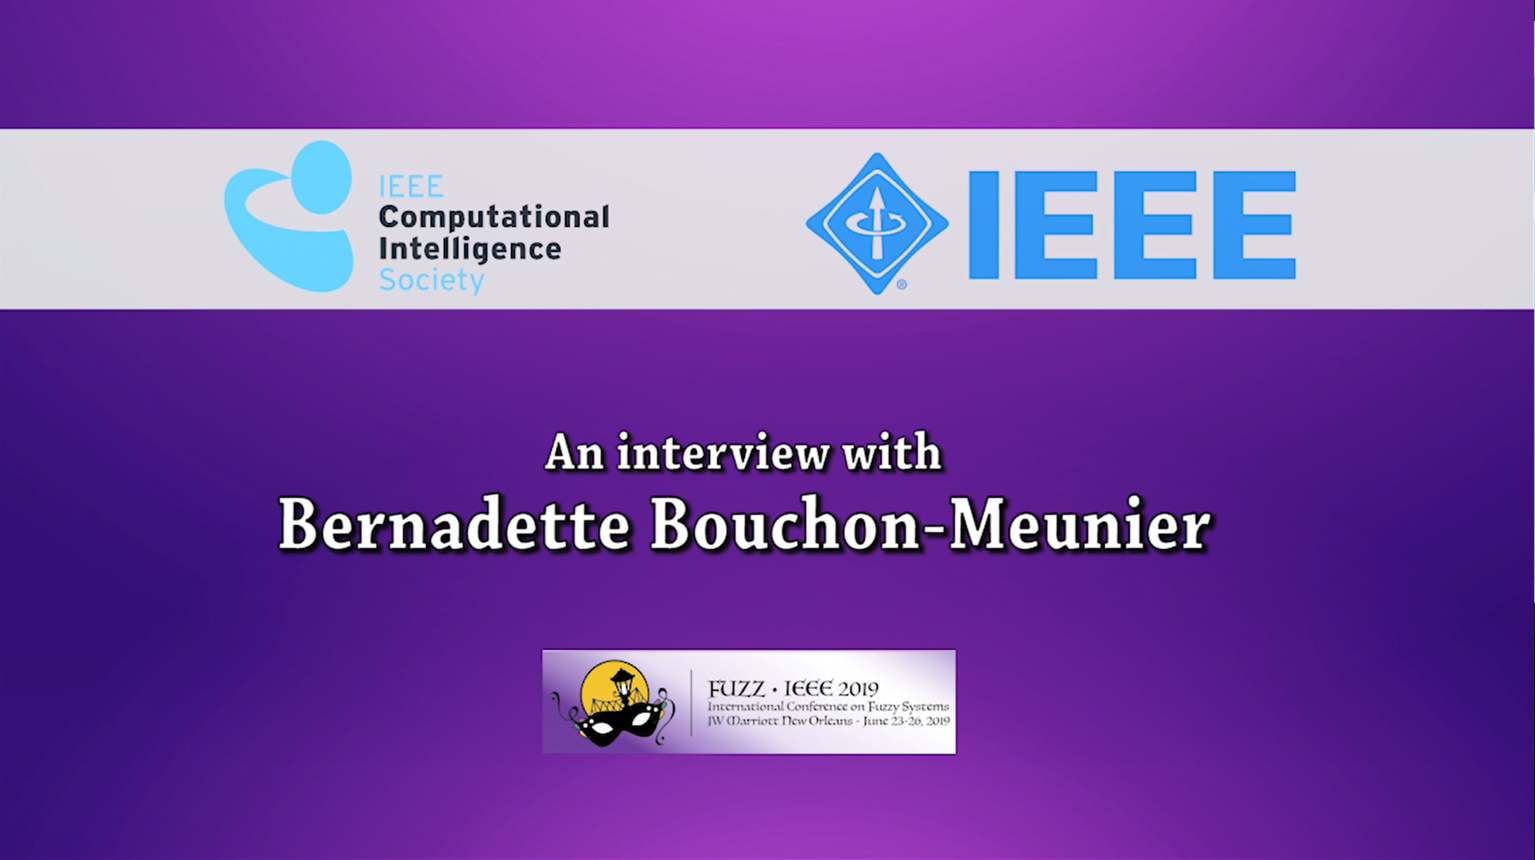 History Committee CIS Oral History Project Series - Bernadette Bouchon-Meunier